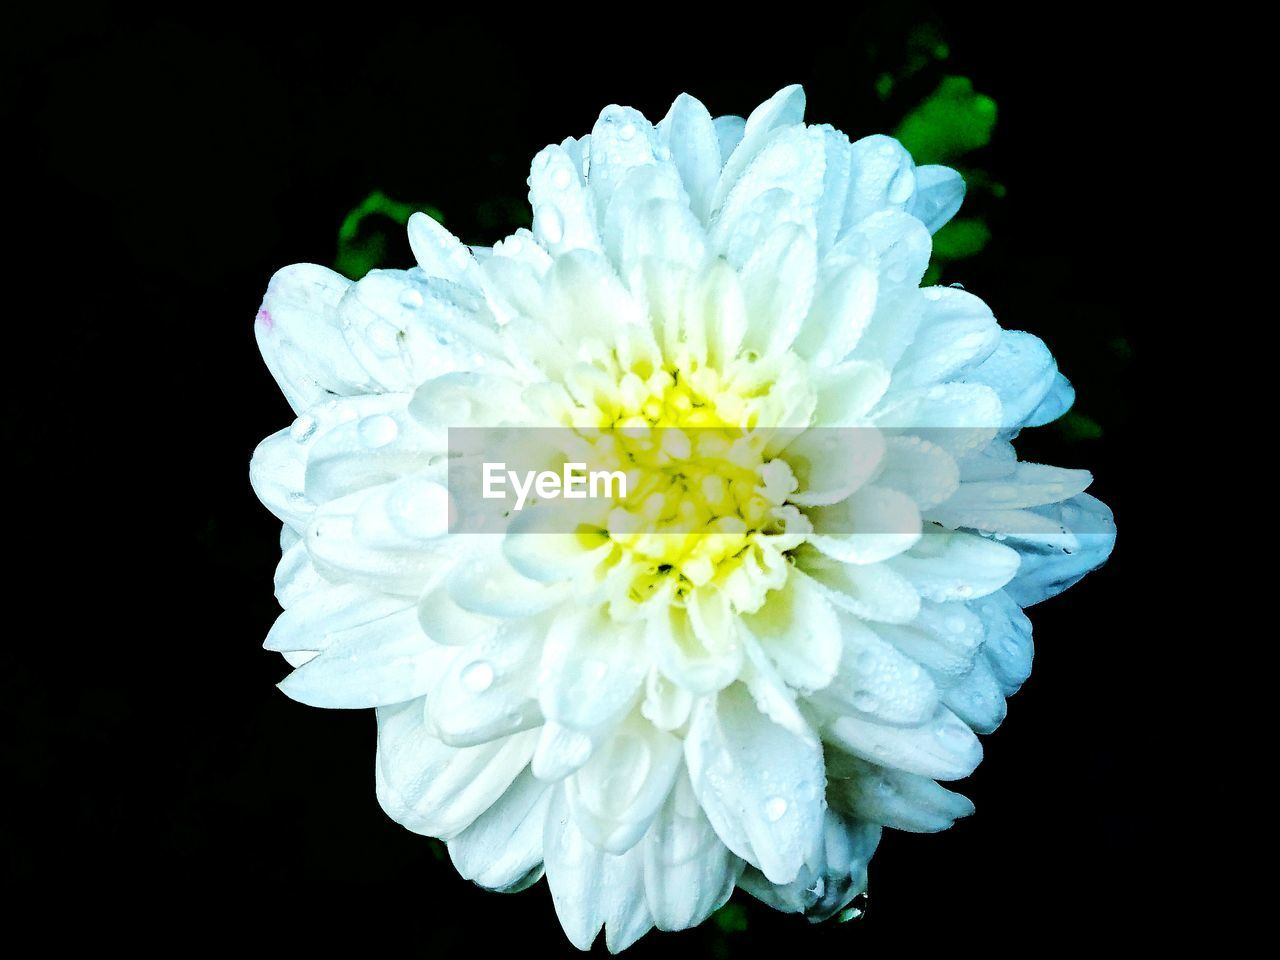 flower, petal, black background, white color, beauty in nature, fragility, nature, flower head, close-up, studio shot, no people, growth, freshness, blooming, day, outdoors